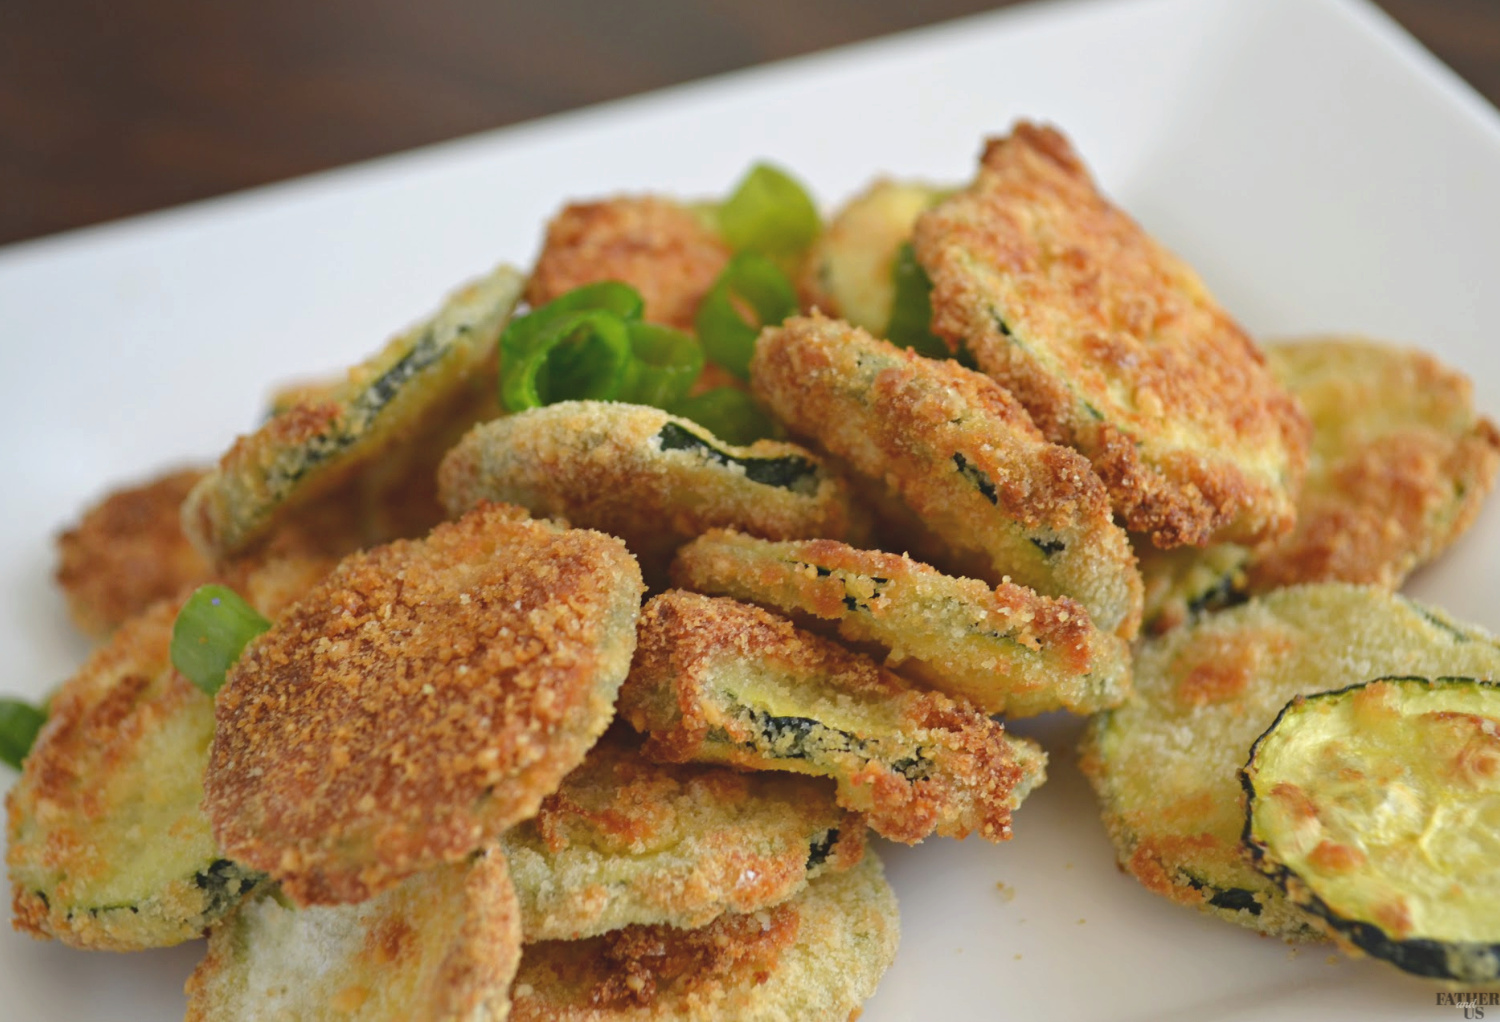 Air Fryer Zucchini Chips are a great healthy appetizer or snack